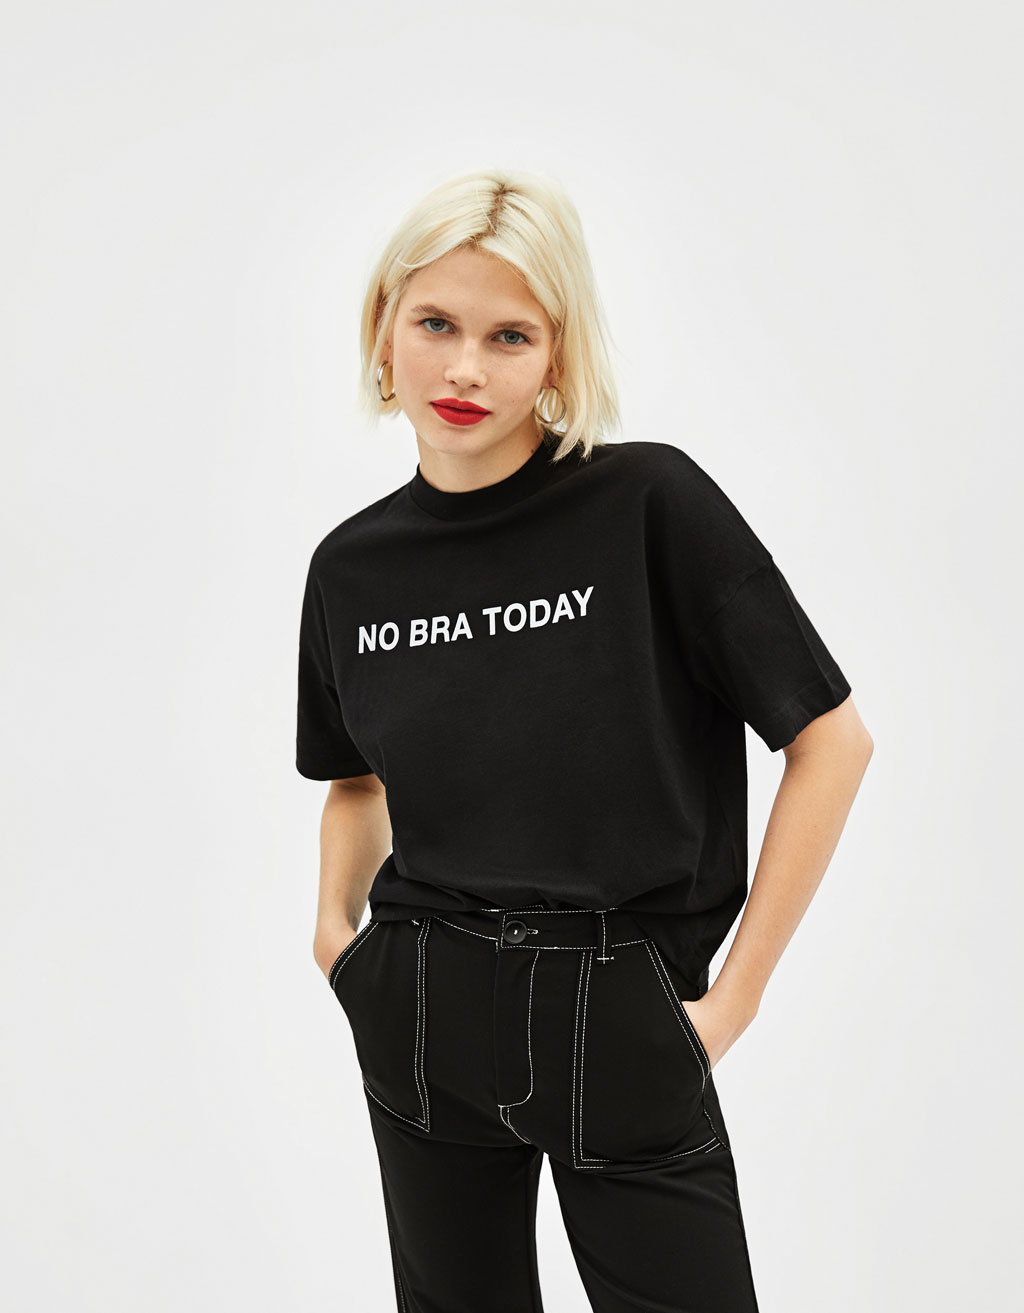 'No bra today' T-shirt